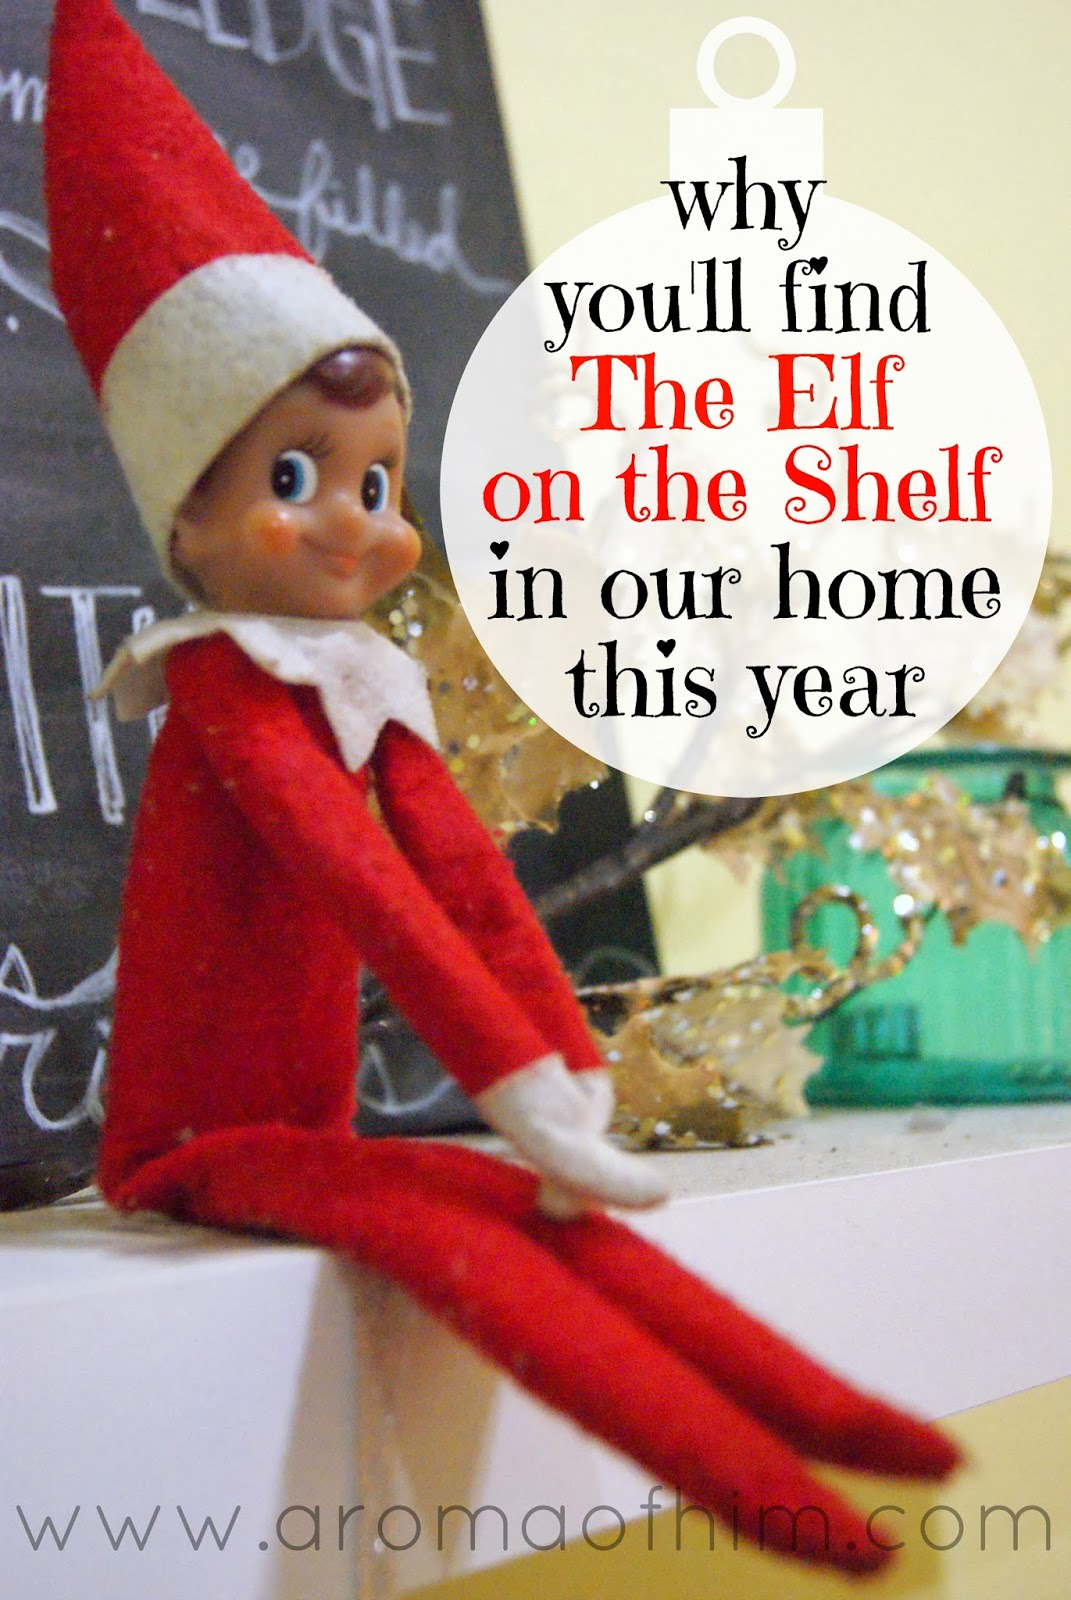 Elf on the shelf wallpaper wallpapersafari - Christmas elf on the shelf wallpaper ...